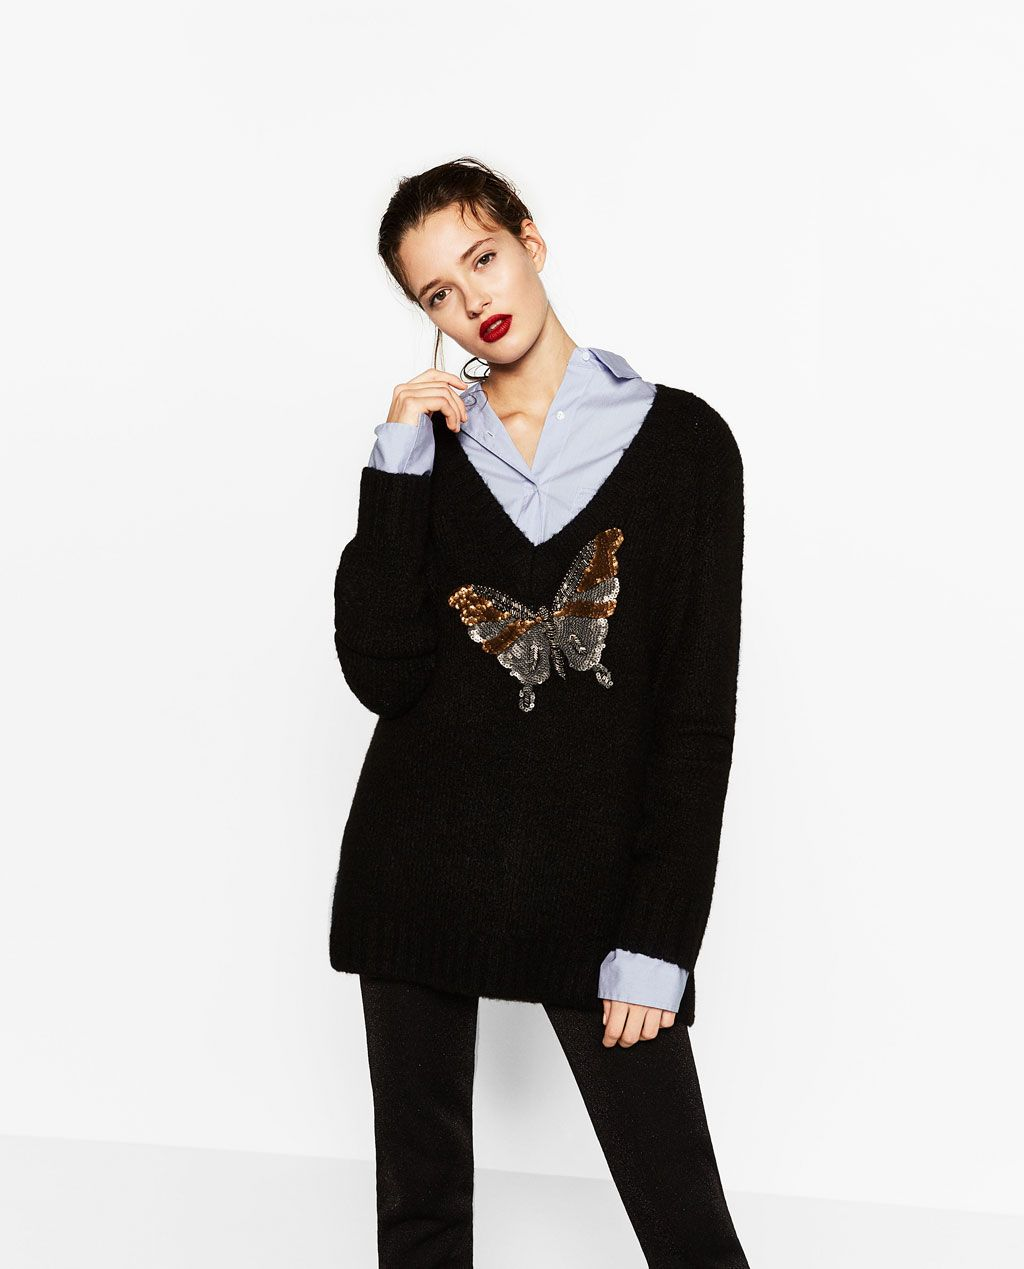 ZARA - WOMAN - V-NECK SWEATER WITH A BUTTERFLY APPLIQUÉ | Fashion ...